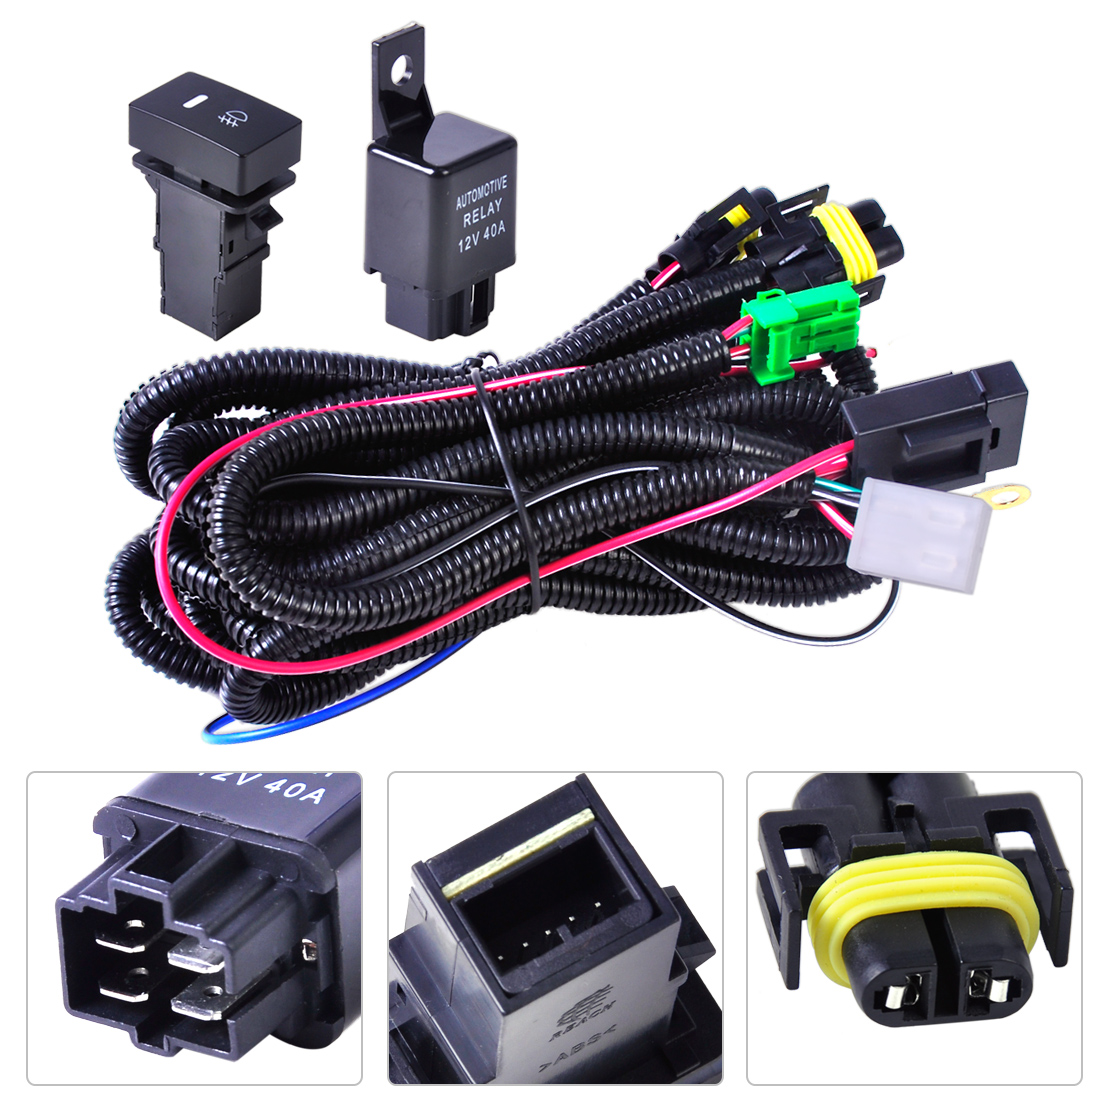 1 wiring harness sockets switch for h11 fog light lamp ford focus 2001 mustang fog light wiring harness at edmiracle.co